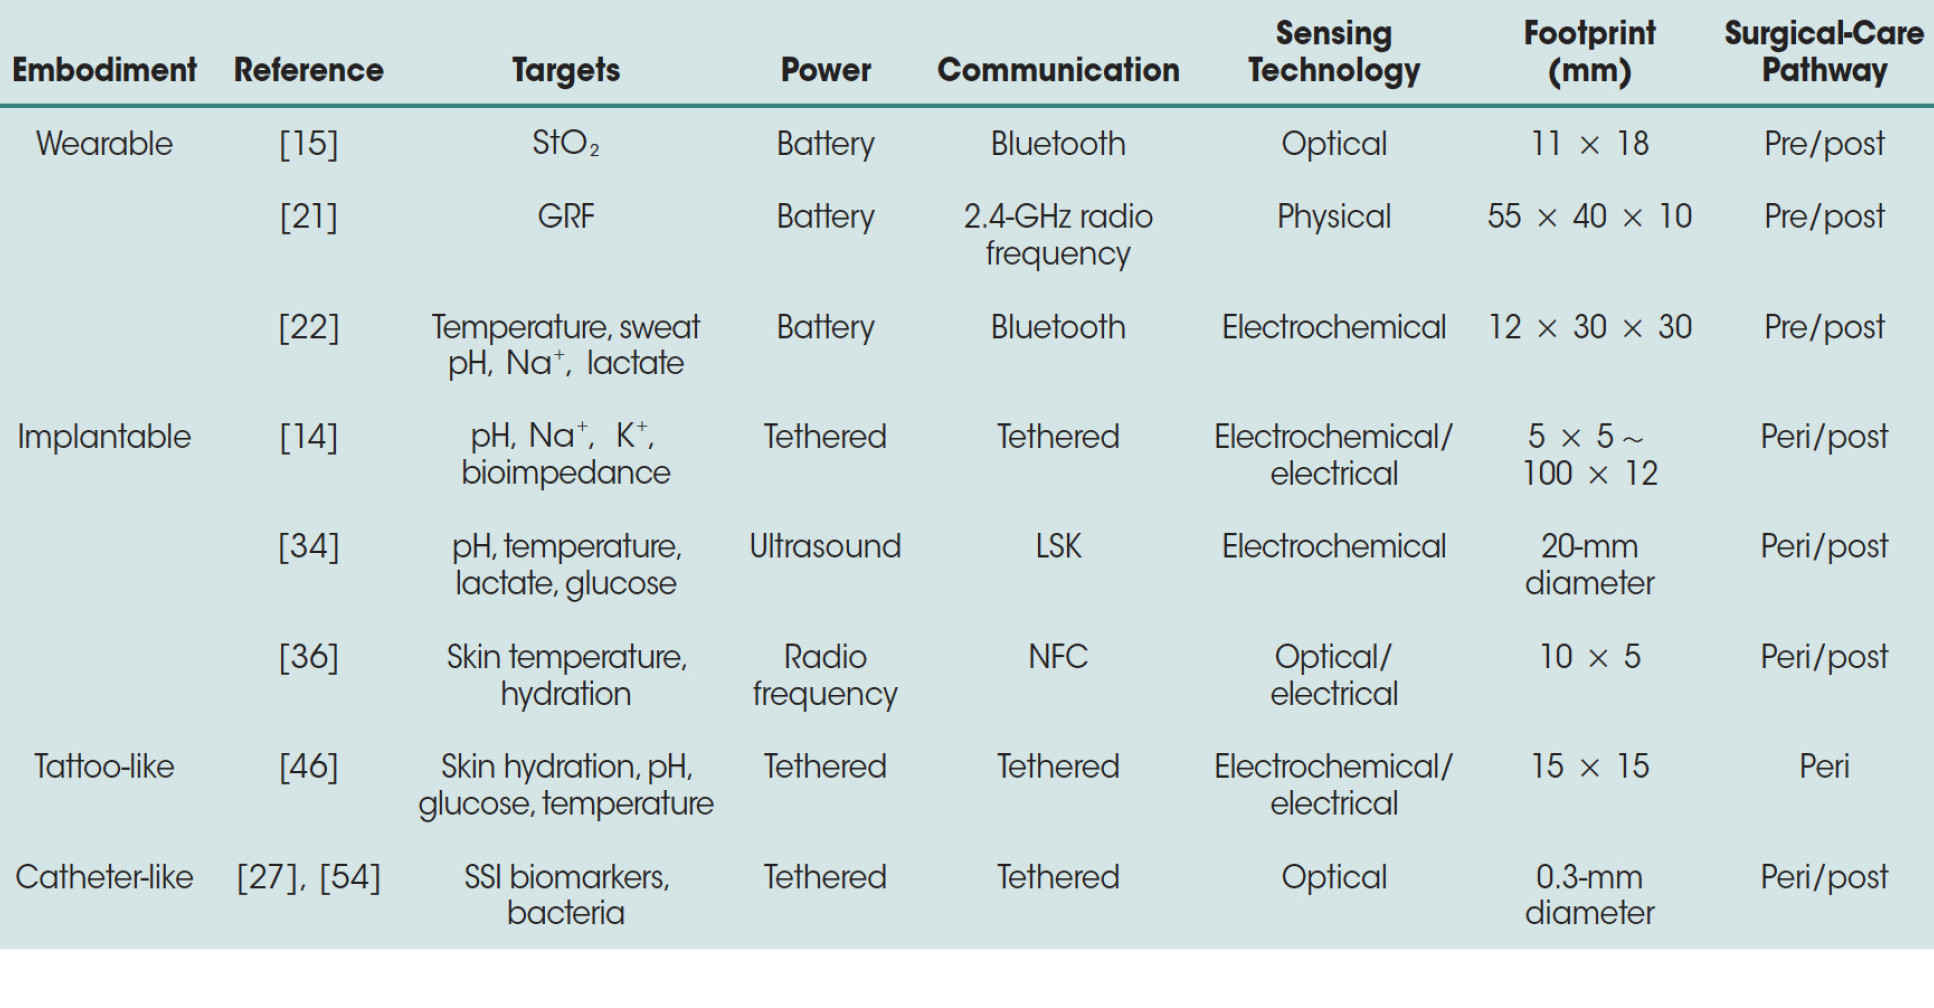 Sensor embodiments and their technical characteristics